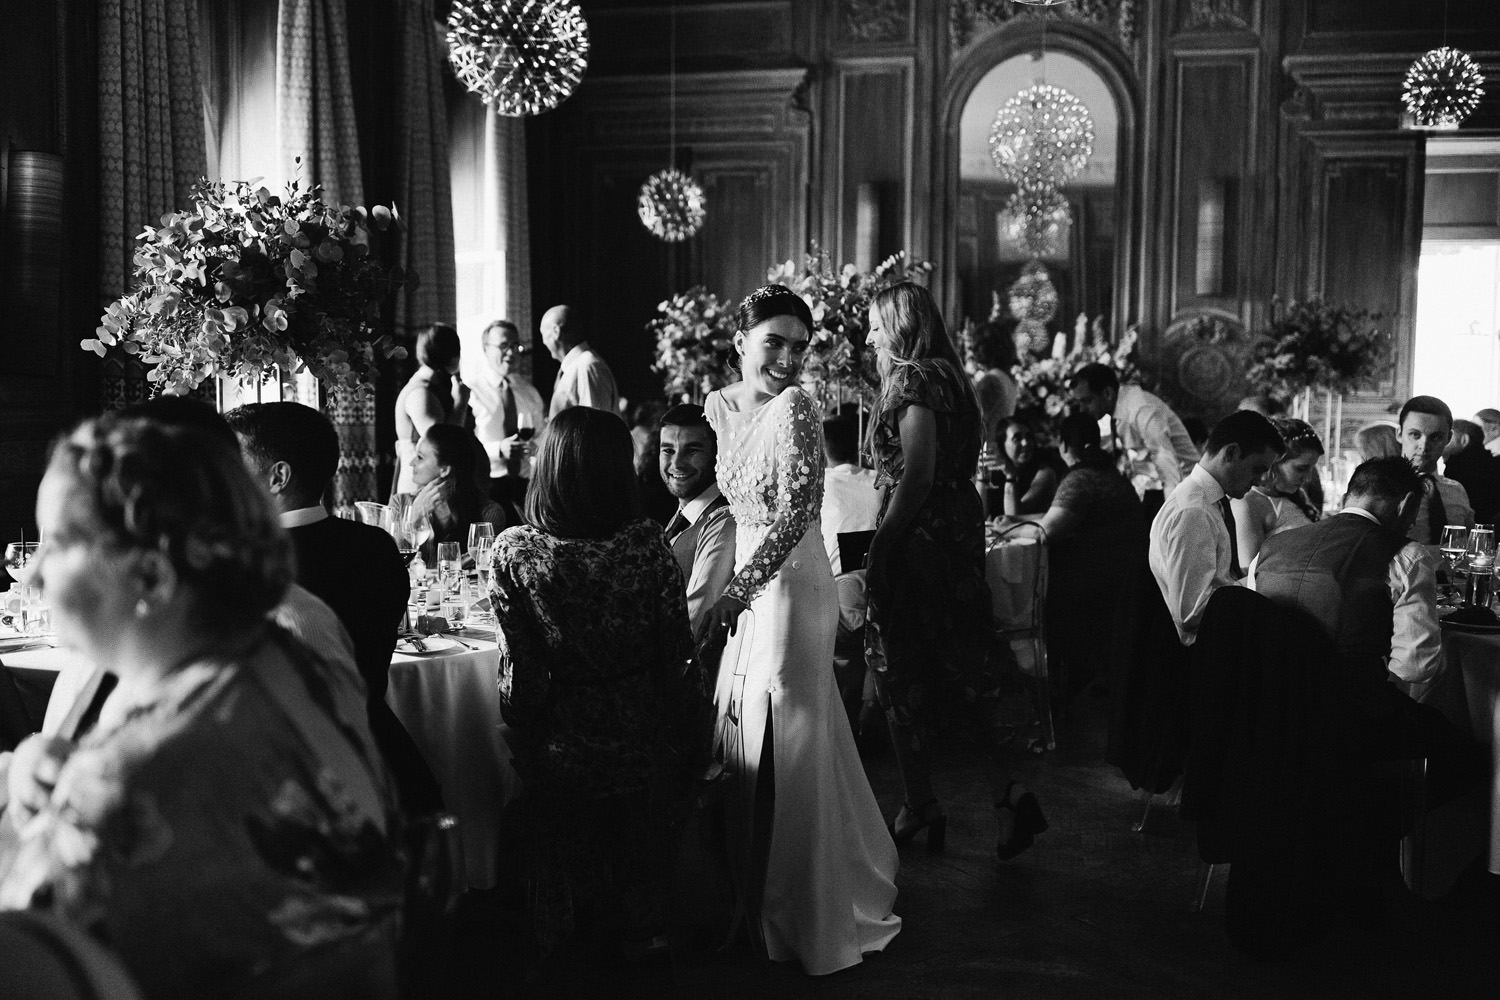 Bride wearing a Rime Arodaky dress smiles during dinner at Cowley Manor